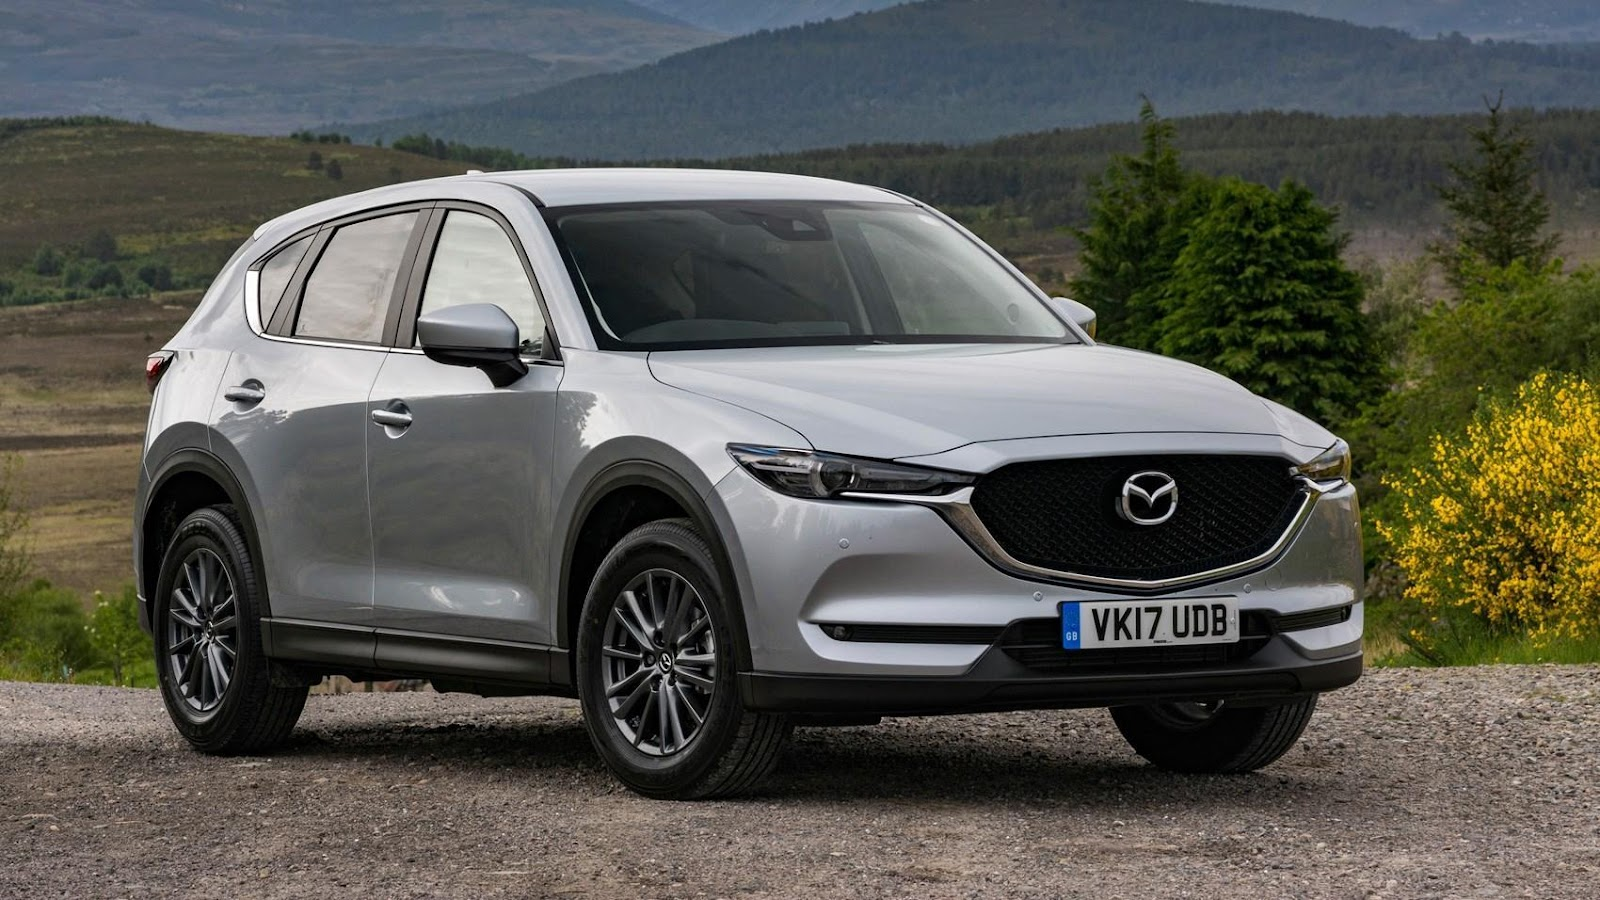 http://images.car.bauercdn.com/pagefiles/73626/mazda-cx5-02.jpg